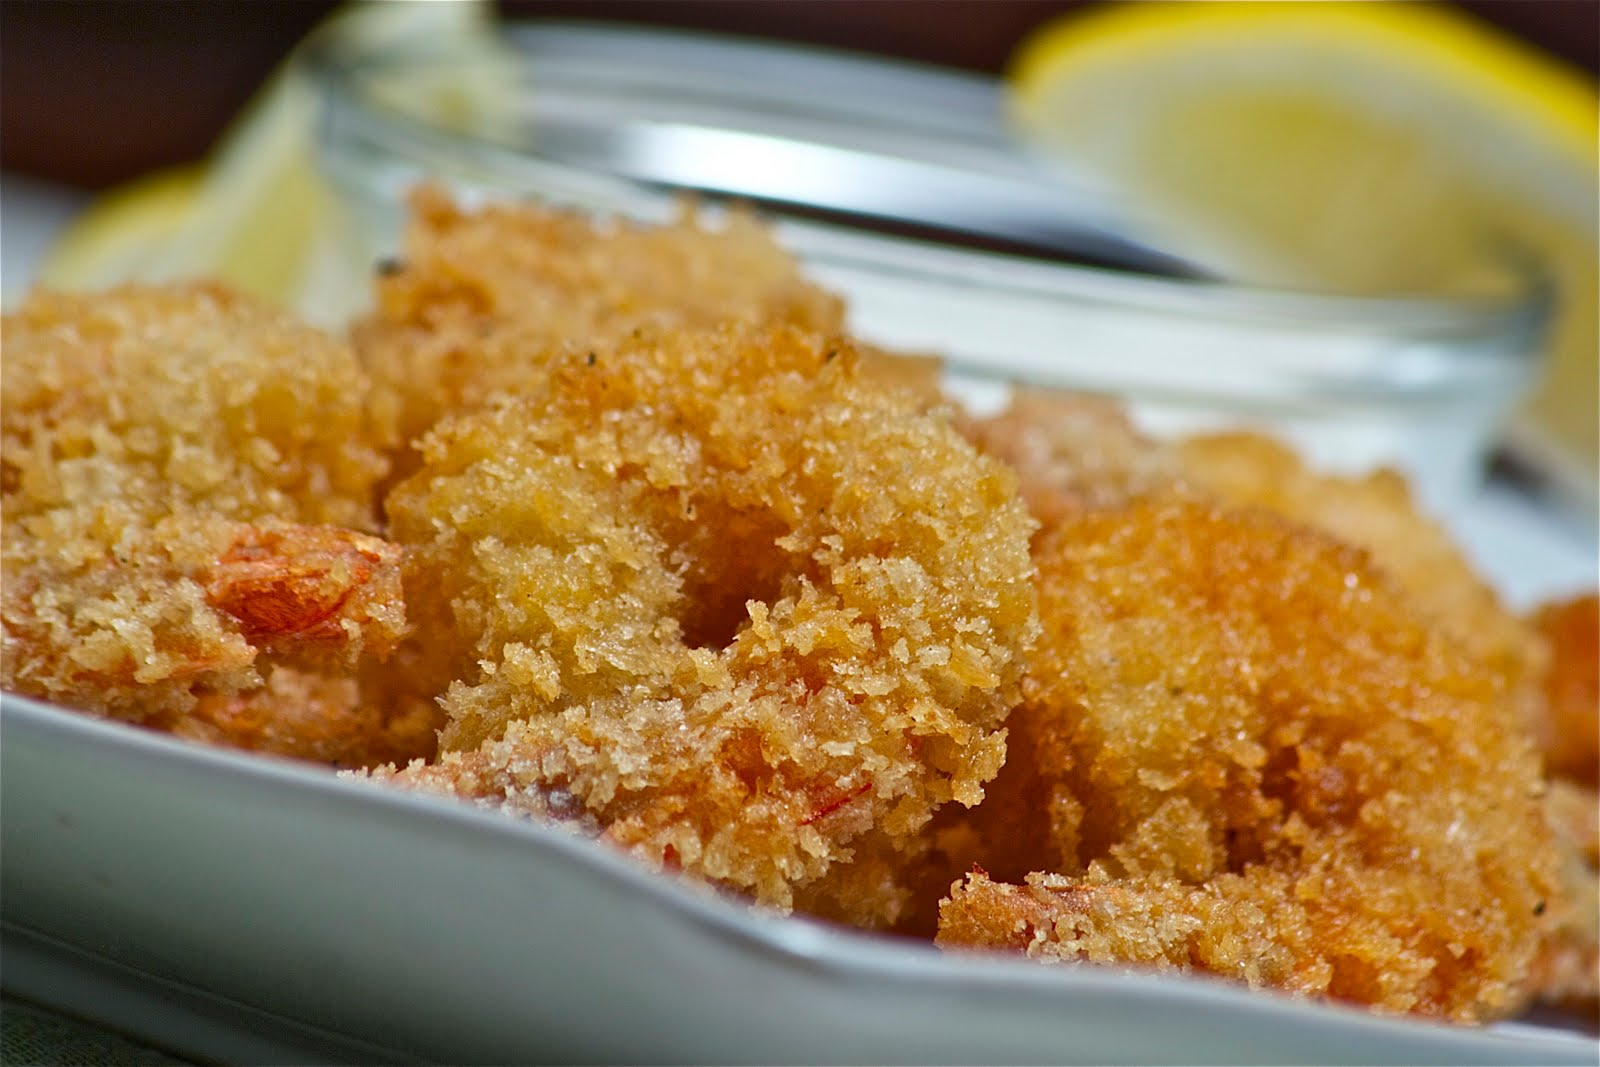 Madeline's Adaptations: Panko Breaded Shrimp with 3 Dipping Sauces